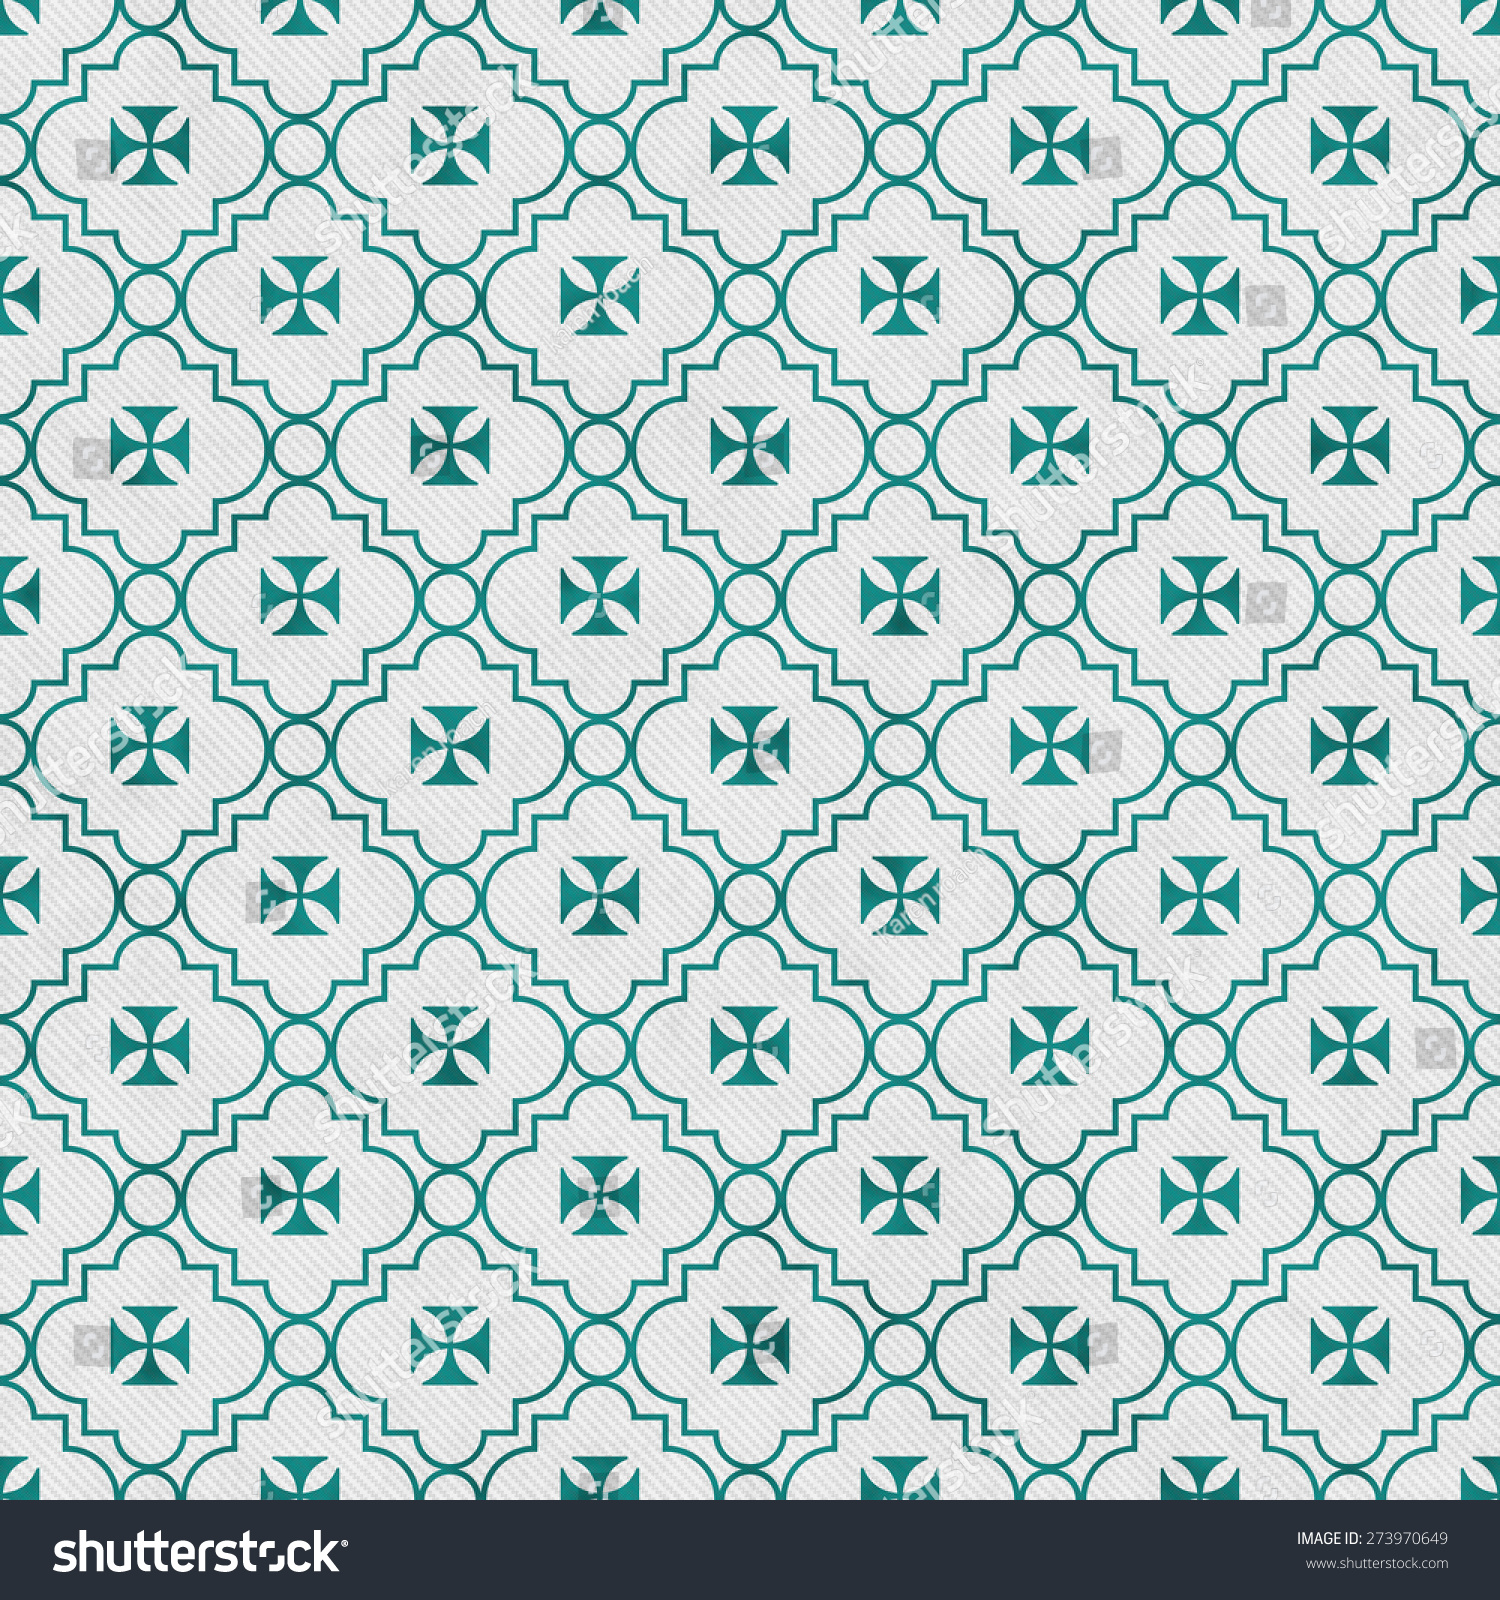 Teal white maltese cross symbol tile stock illustration 273970649 teal and white maltese cross symbol tile pattern repeat background that is seamless and repeats biocorpaavc